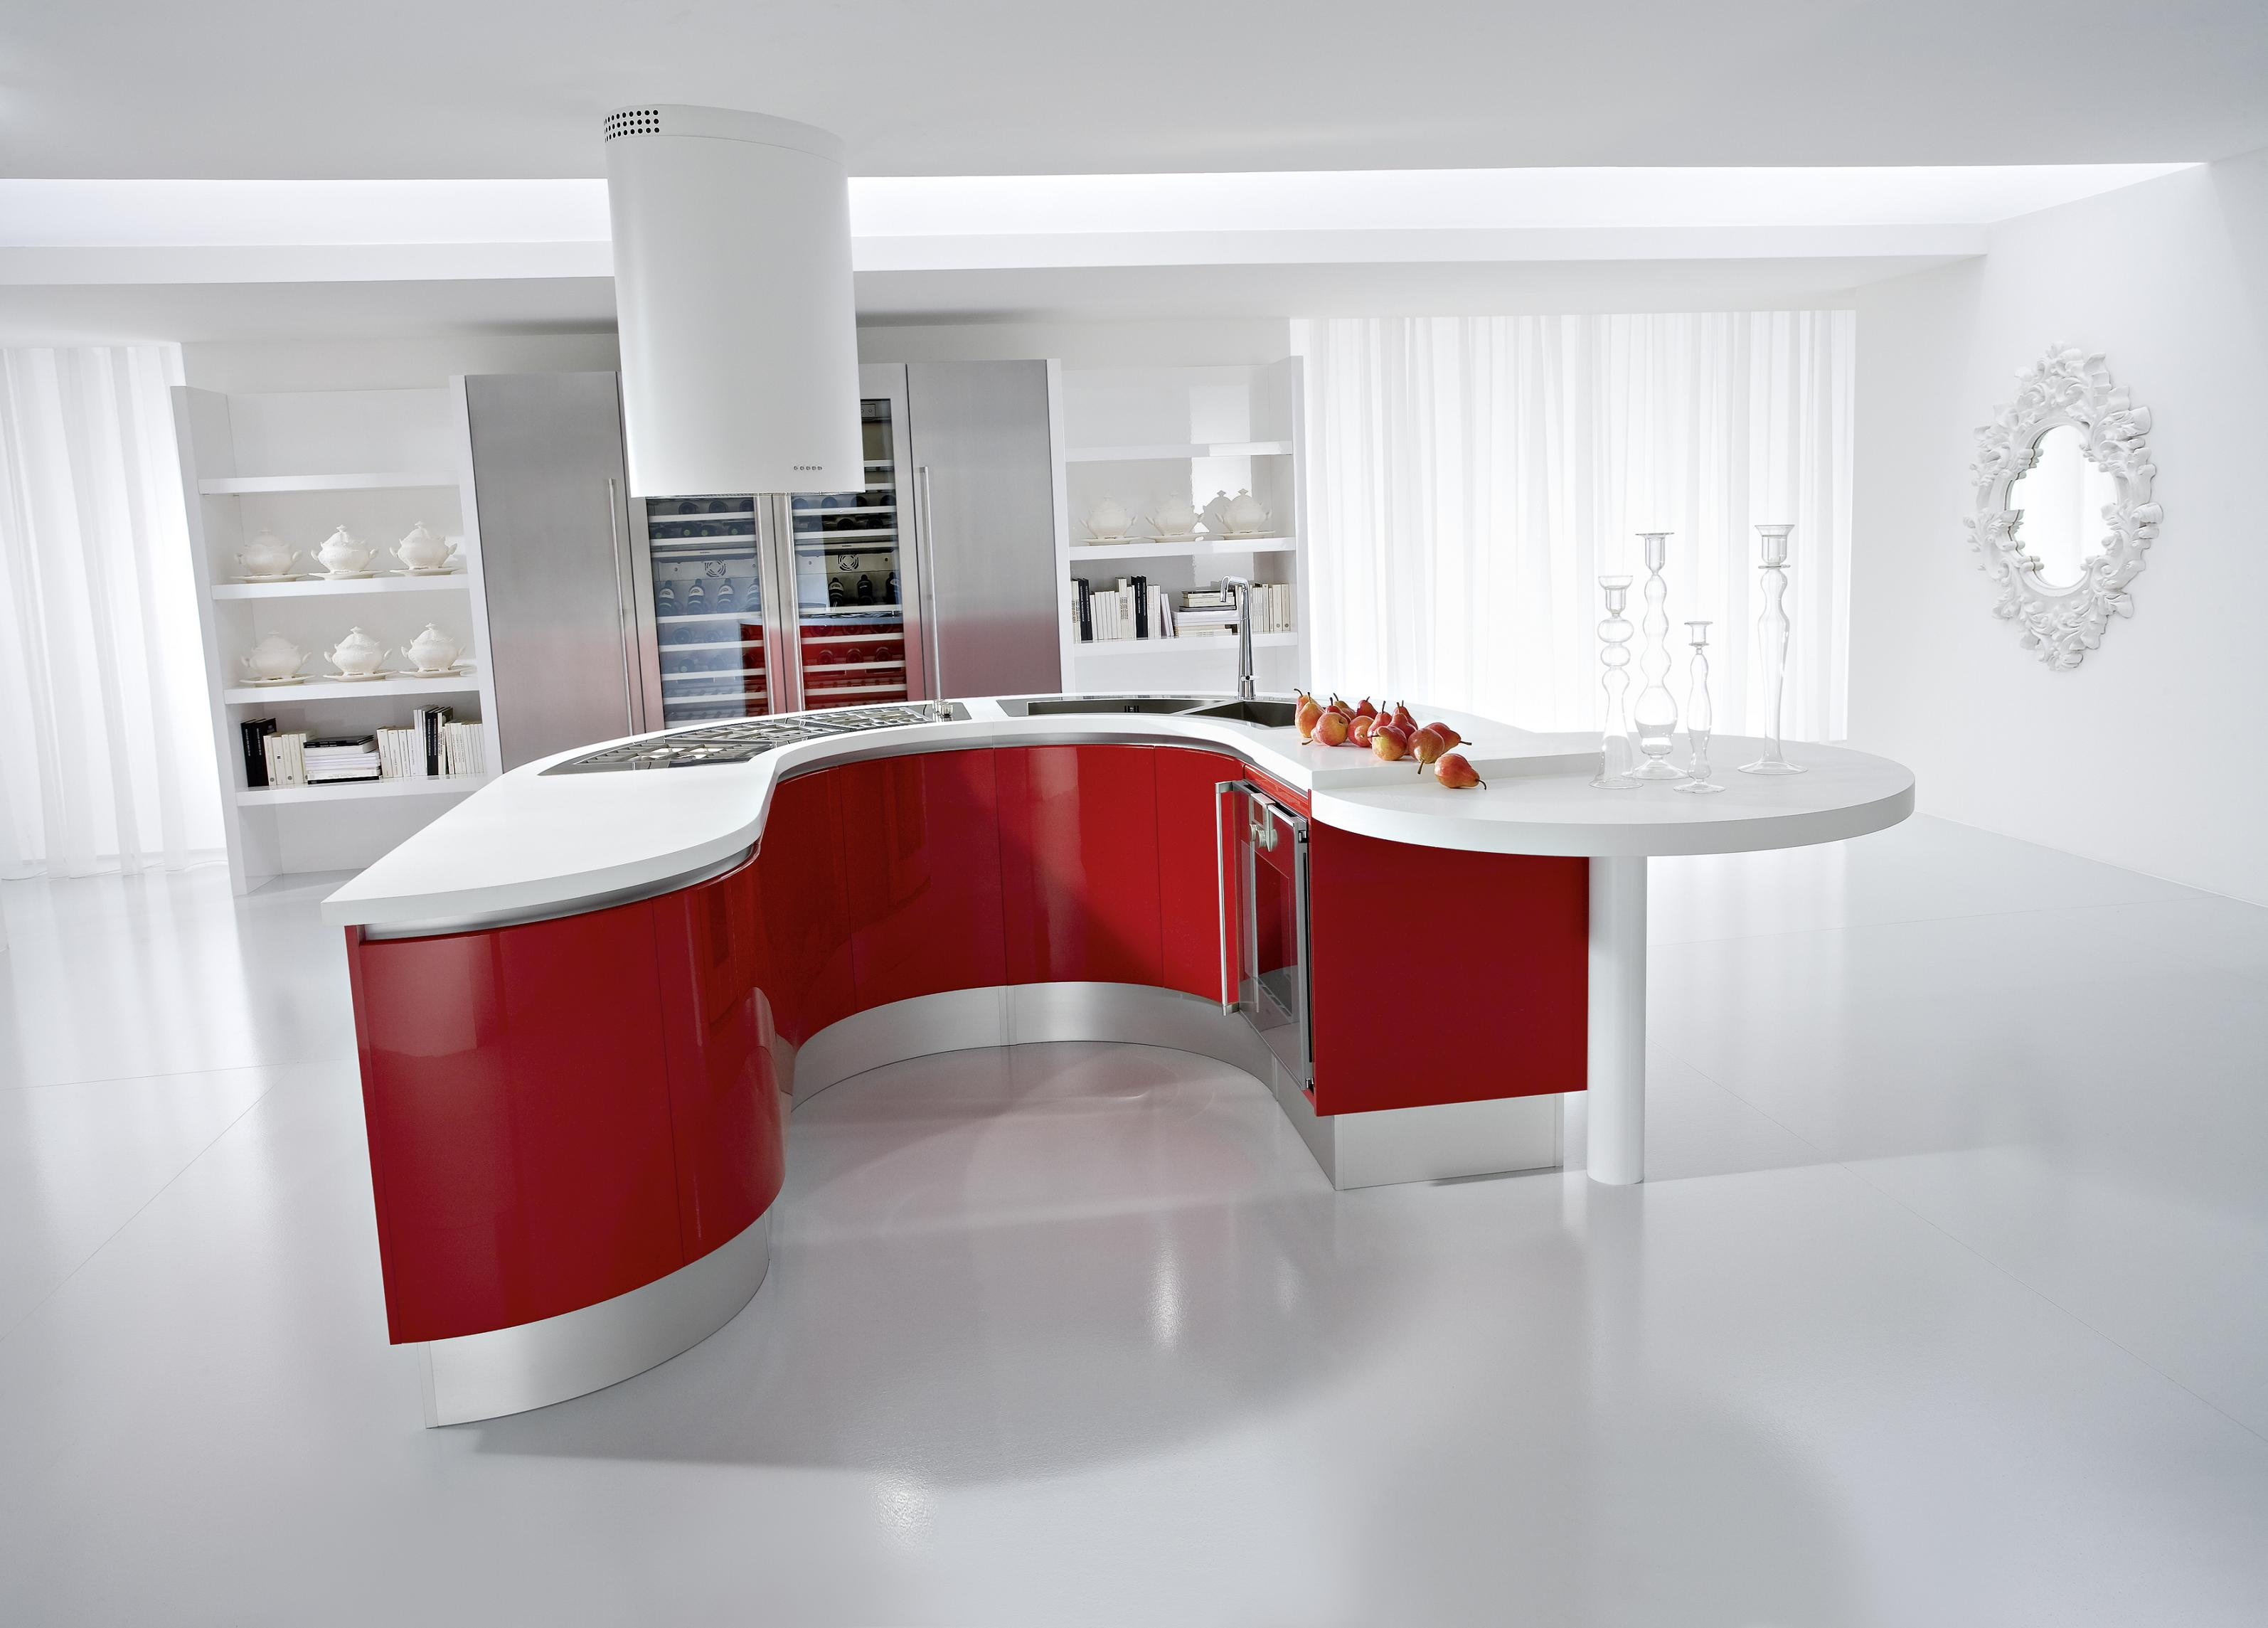 Amazing Modern Kitchen CabiDesign Ideas 3189 x 2289 · 381 kB · jpeg